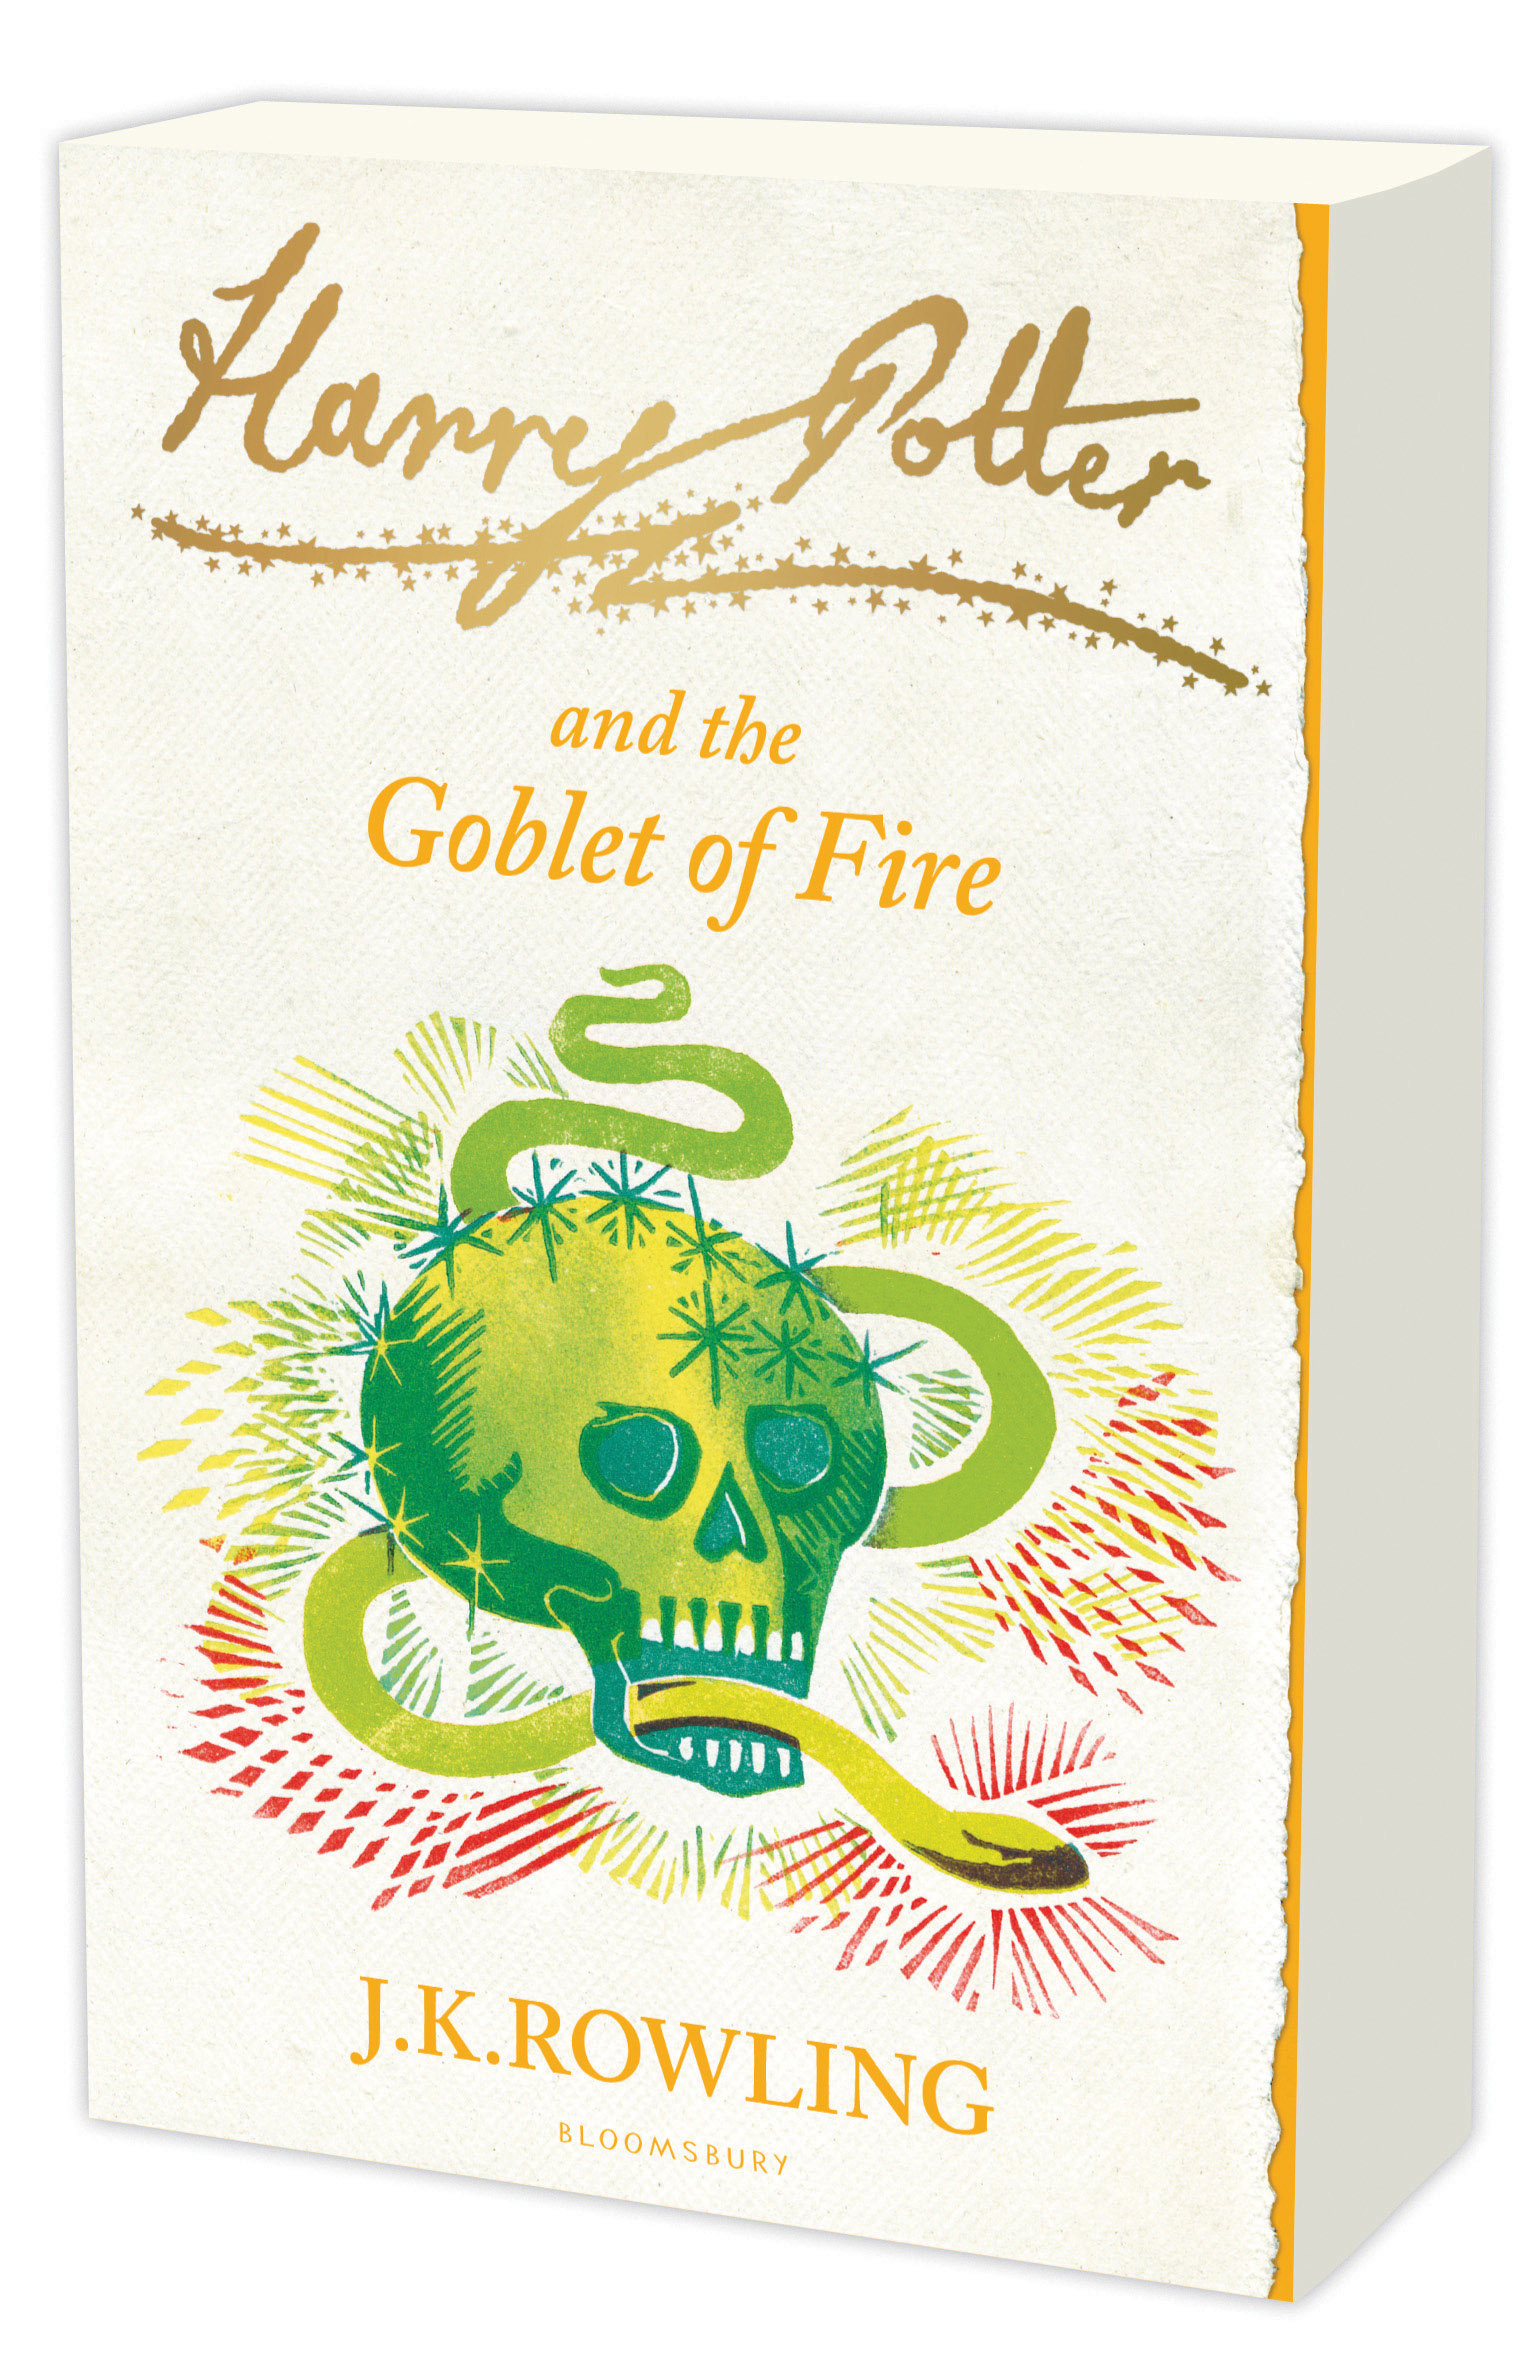 Cover Art for Harry Potter and the Goblet of Fire signature edition, ISBN: 9781408810576